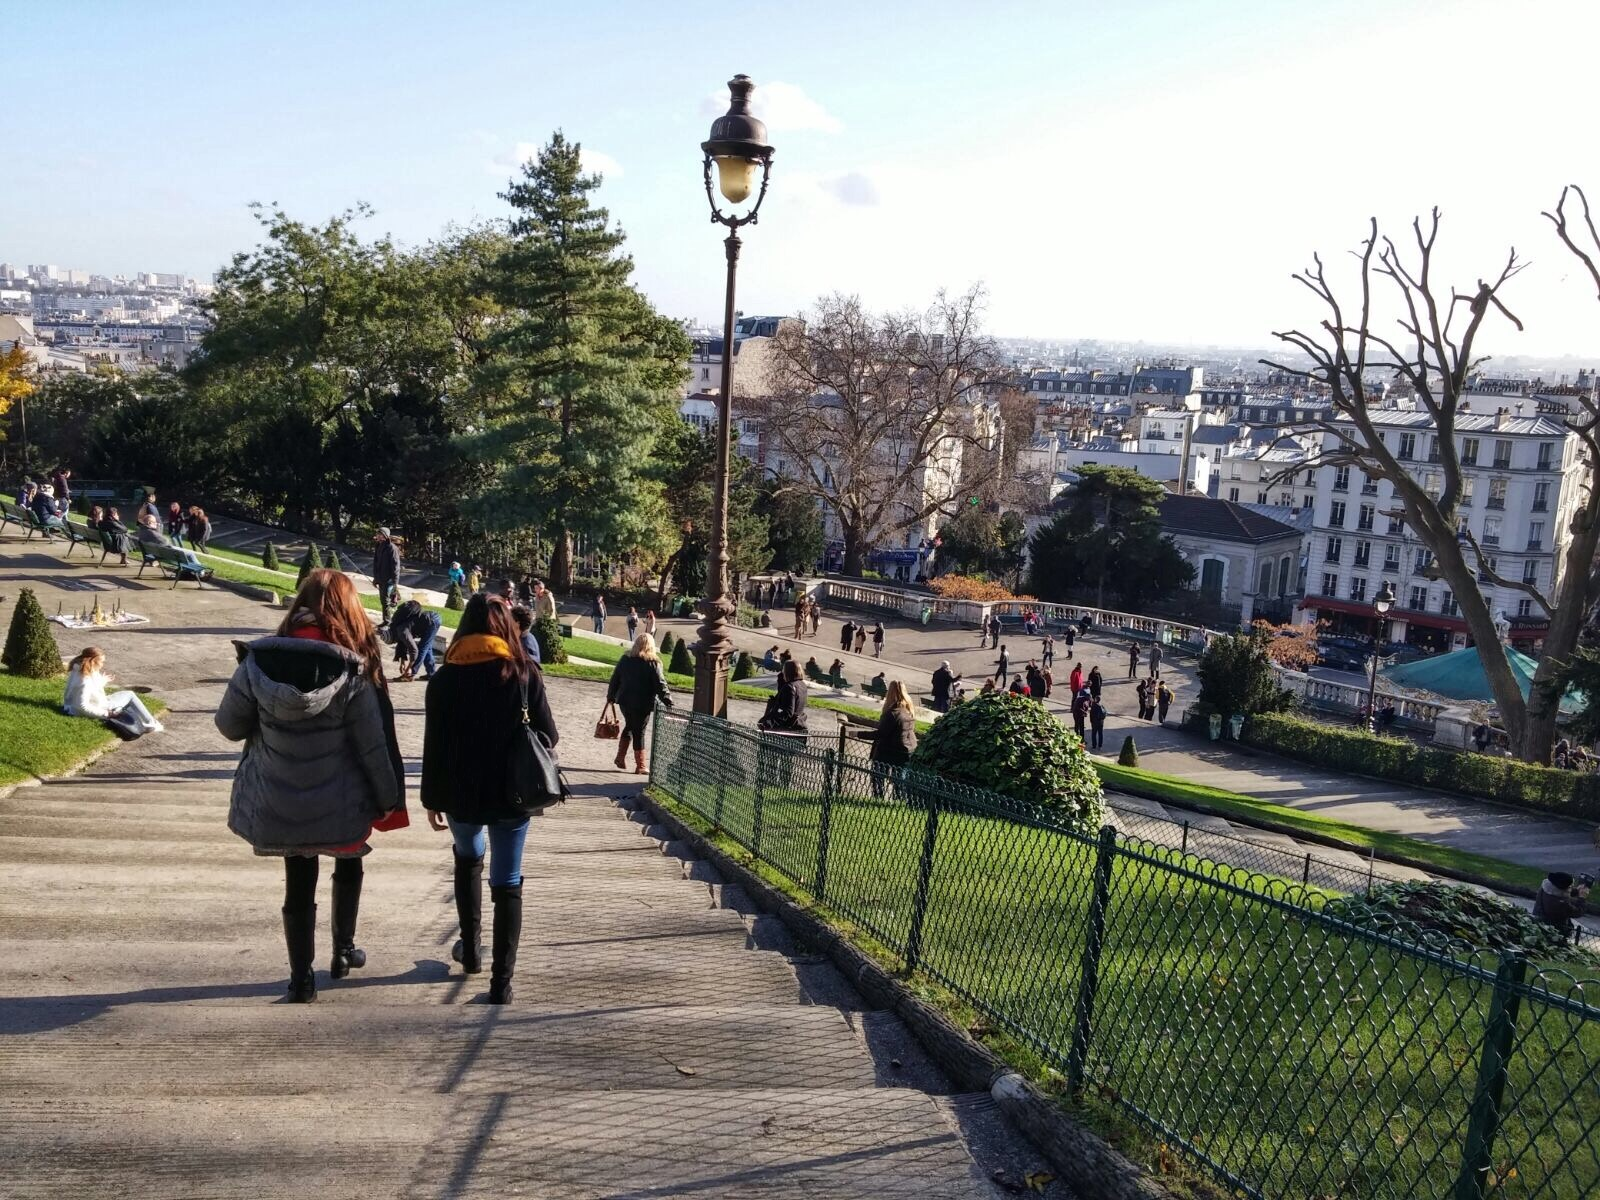 Montmartre, Paris 2015 - I don't have any other pics to post... haha